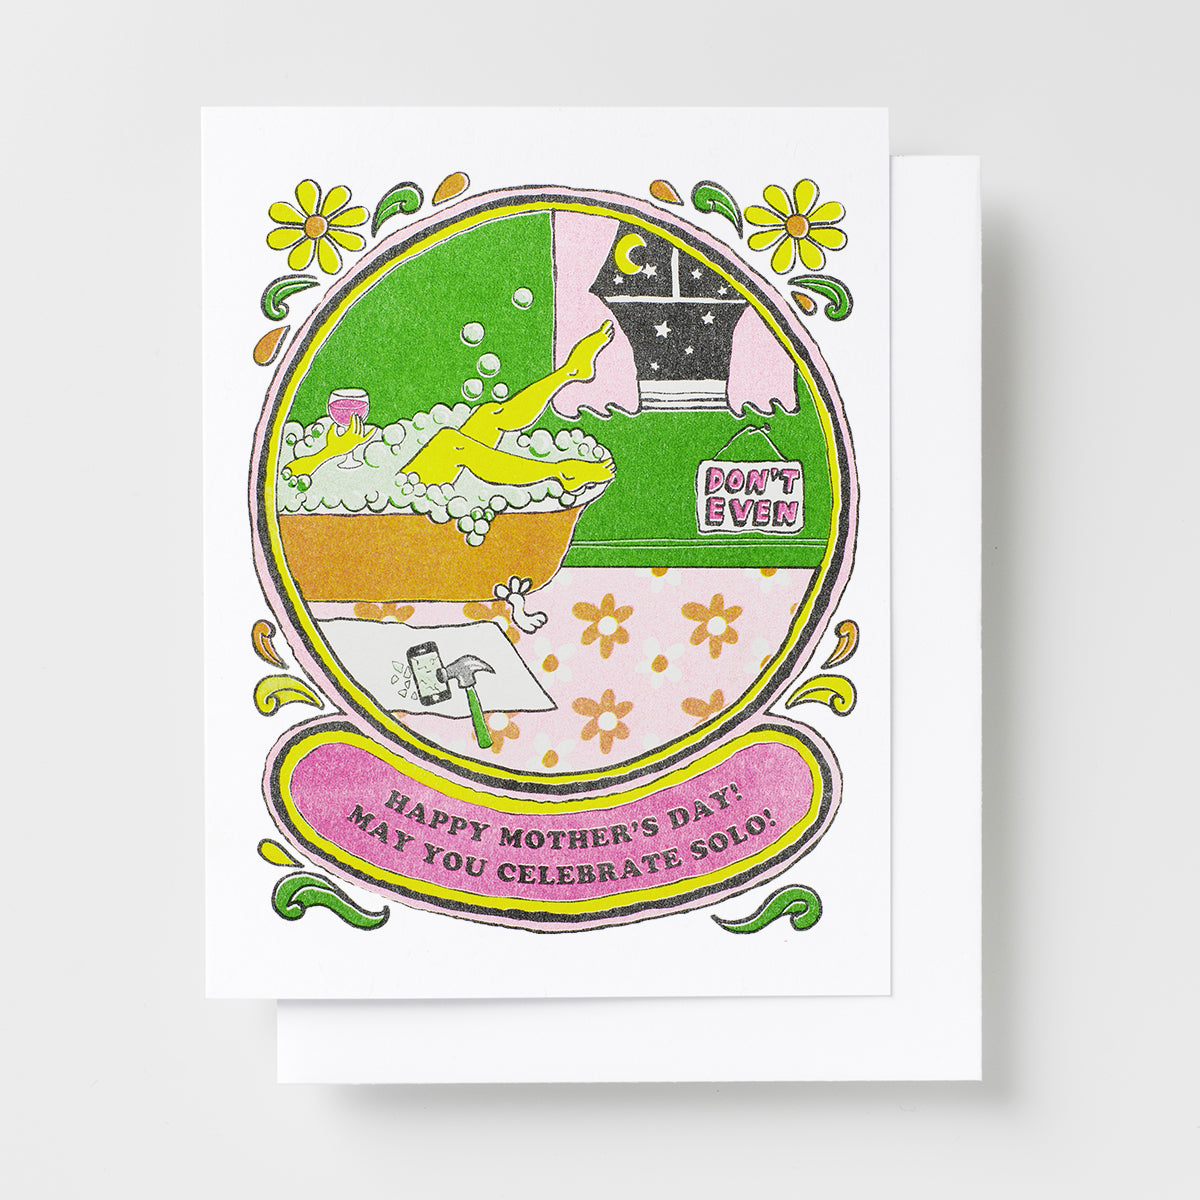 Happy Mothers Day Celebrate Solo! - Risograph Card